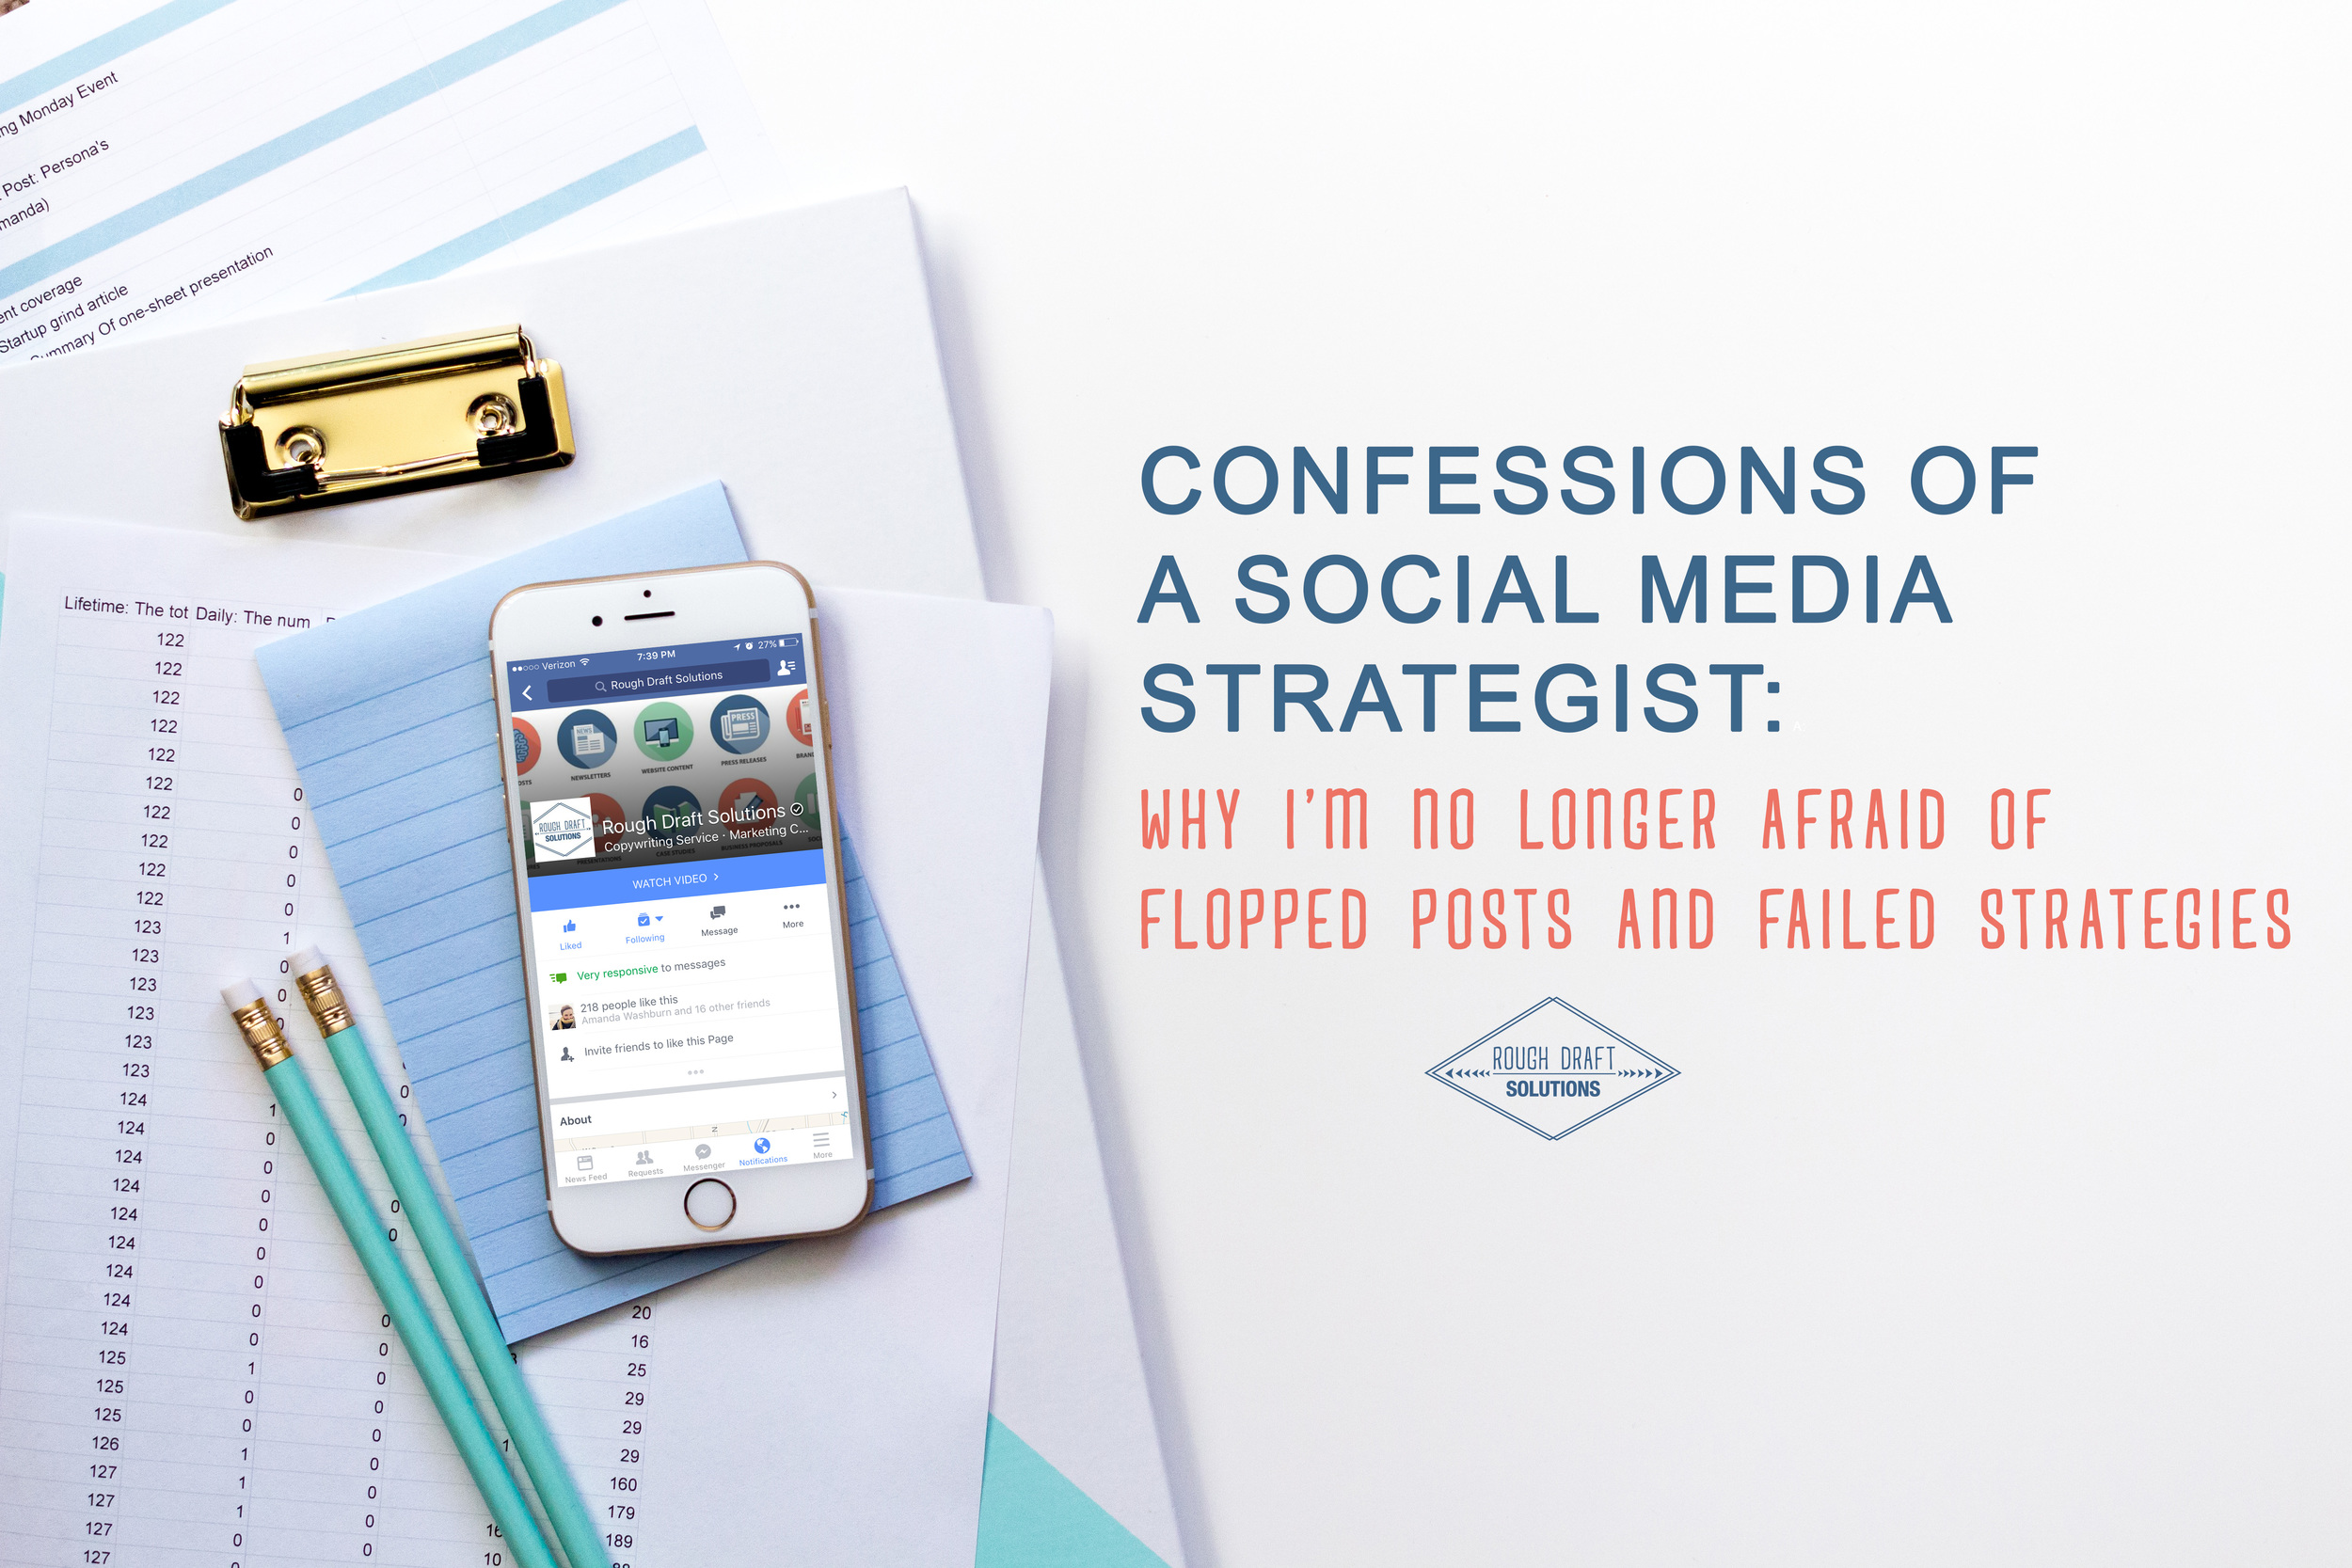 Confessions of a Social Media Strategist